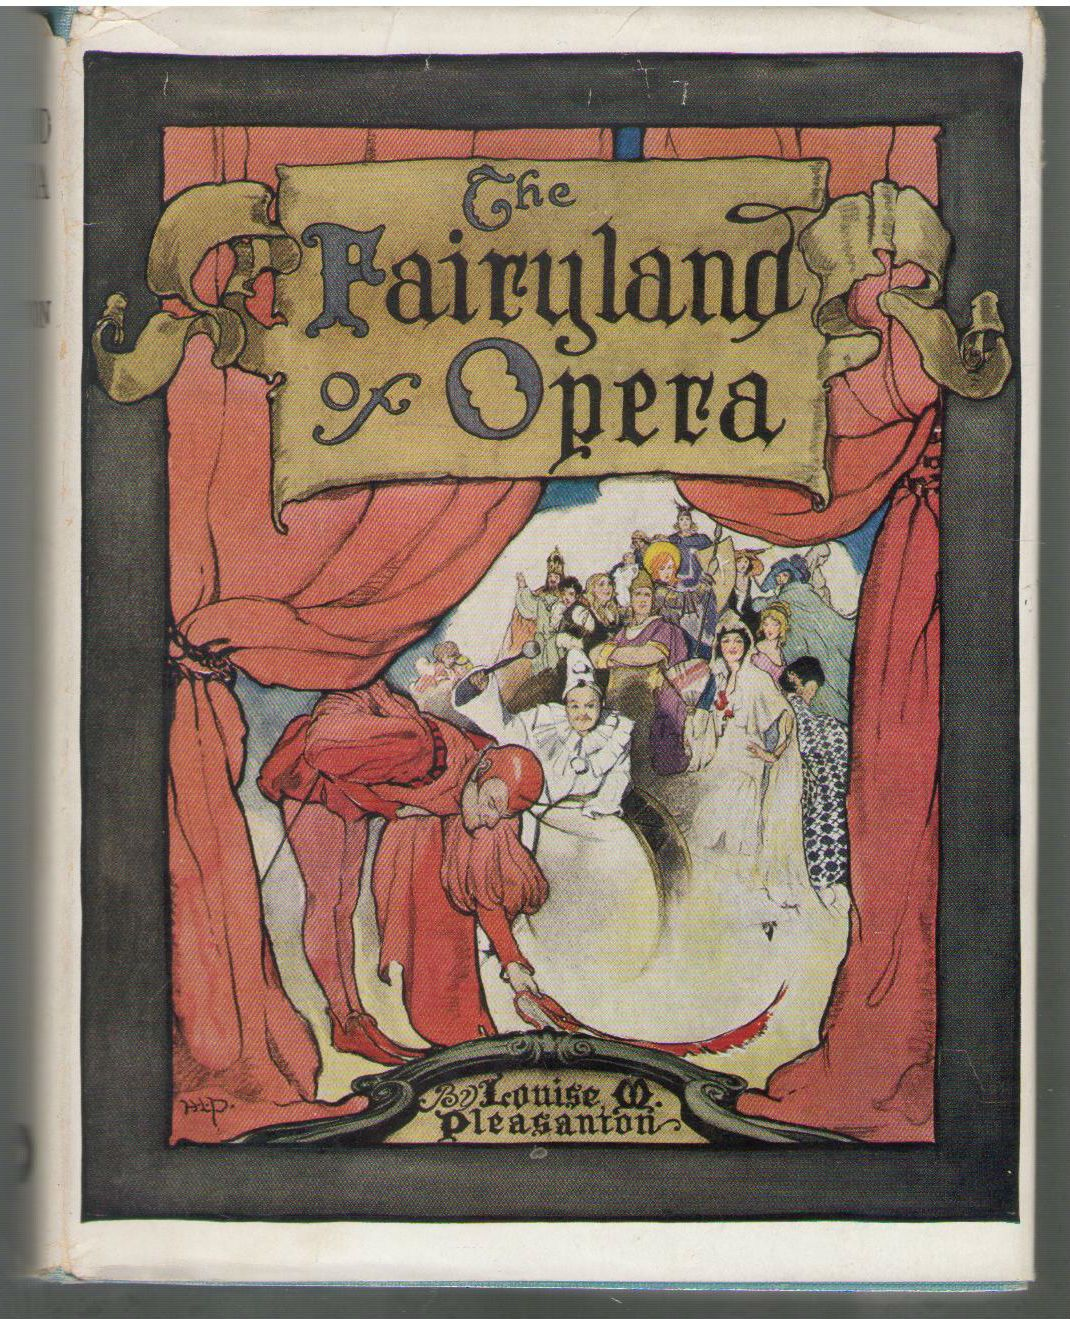 The Fairyland of Opera, by Louise M. Pleasanton. Illustrated by Hattie Longstreet Price, Louise M. Pleasanton